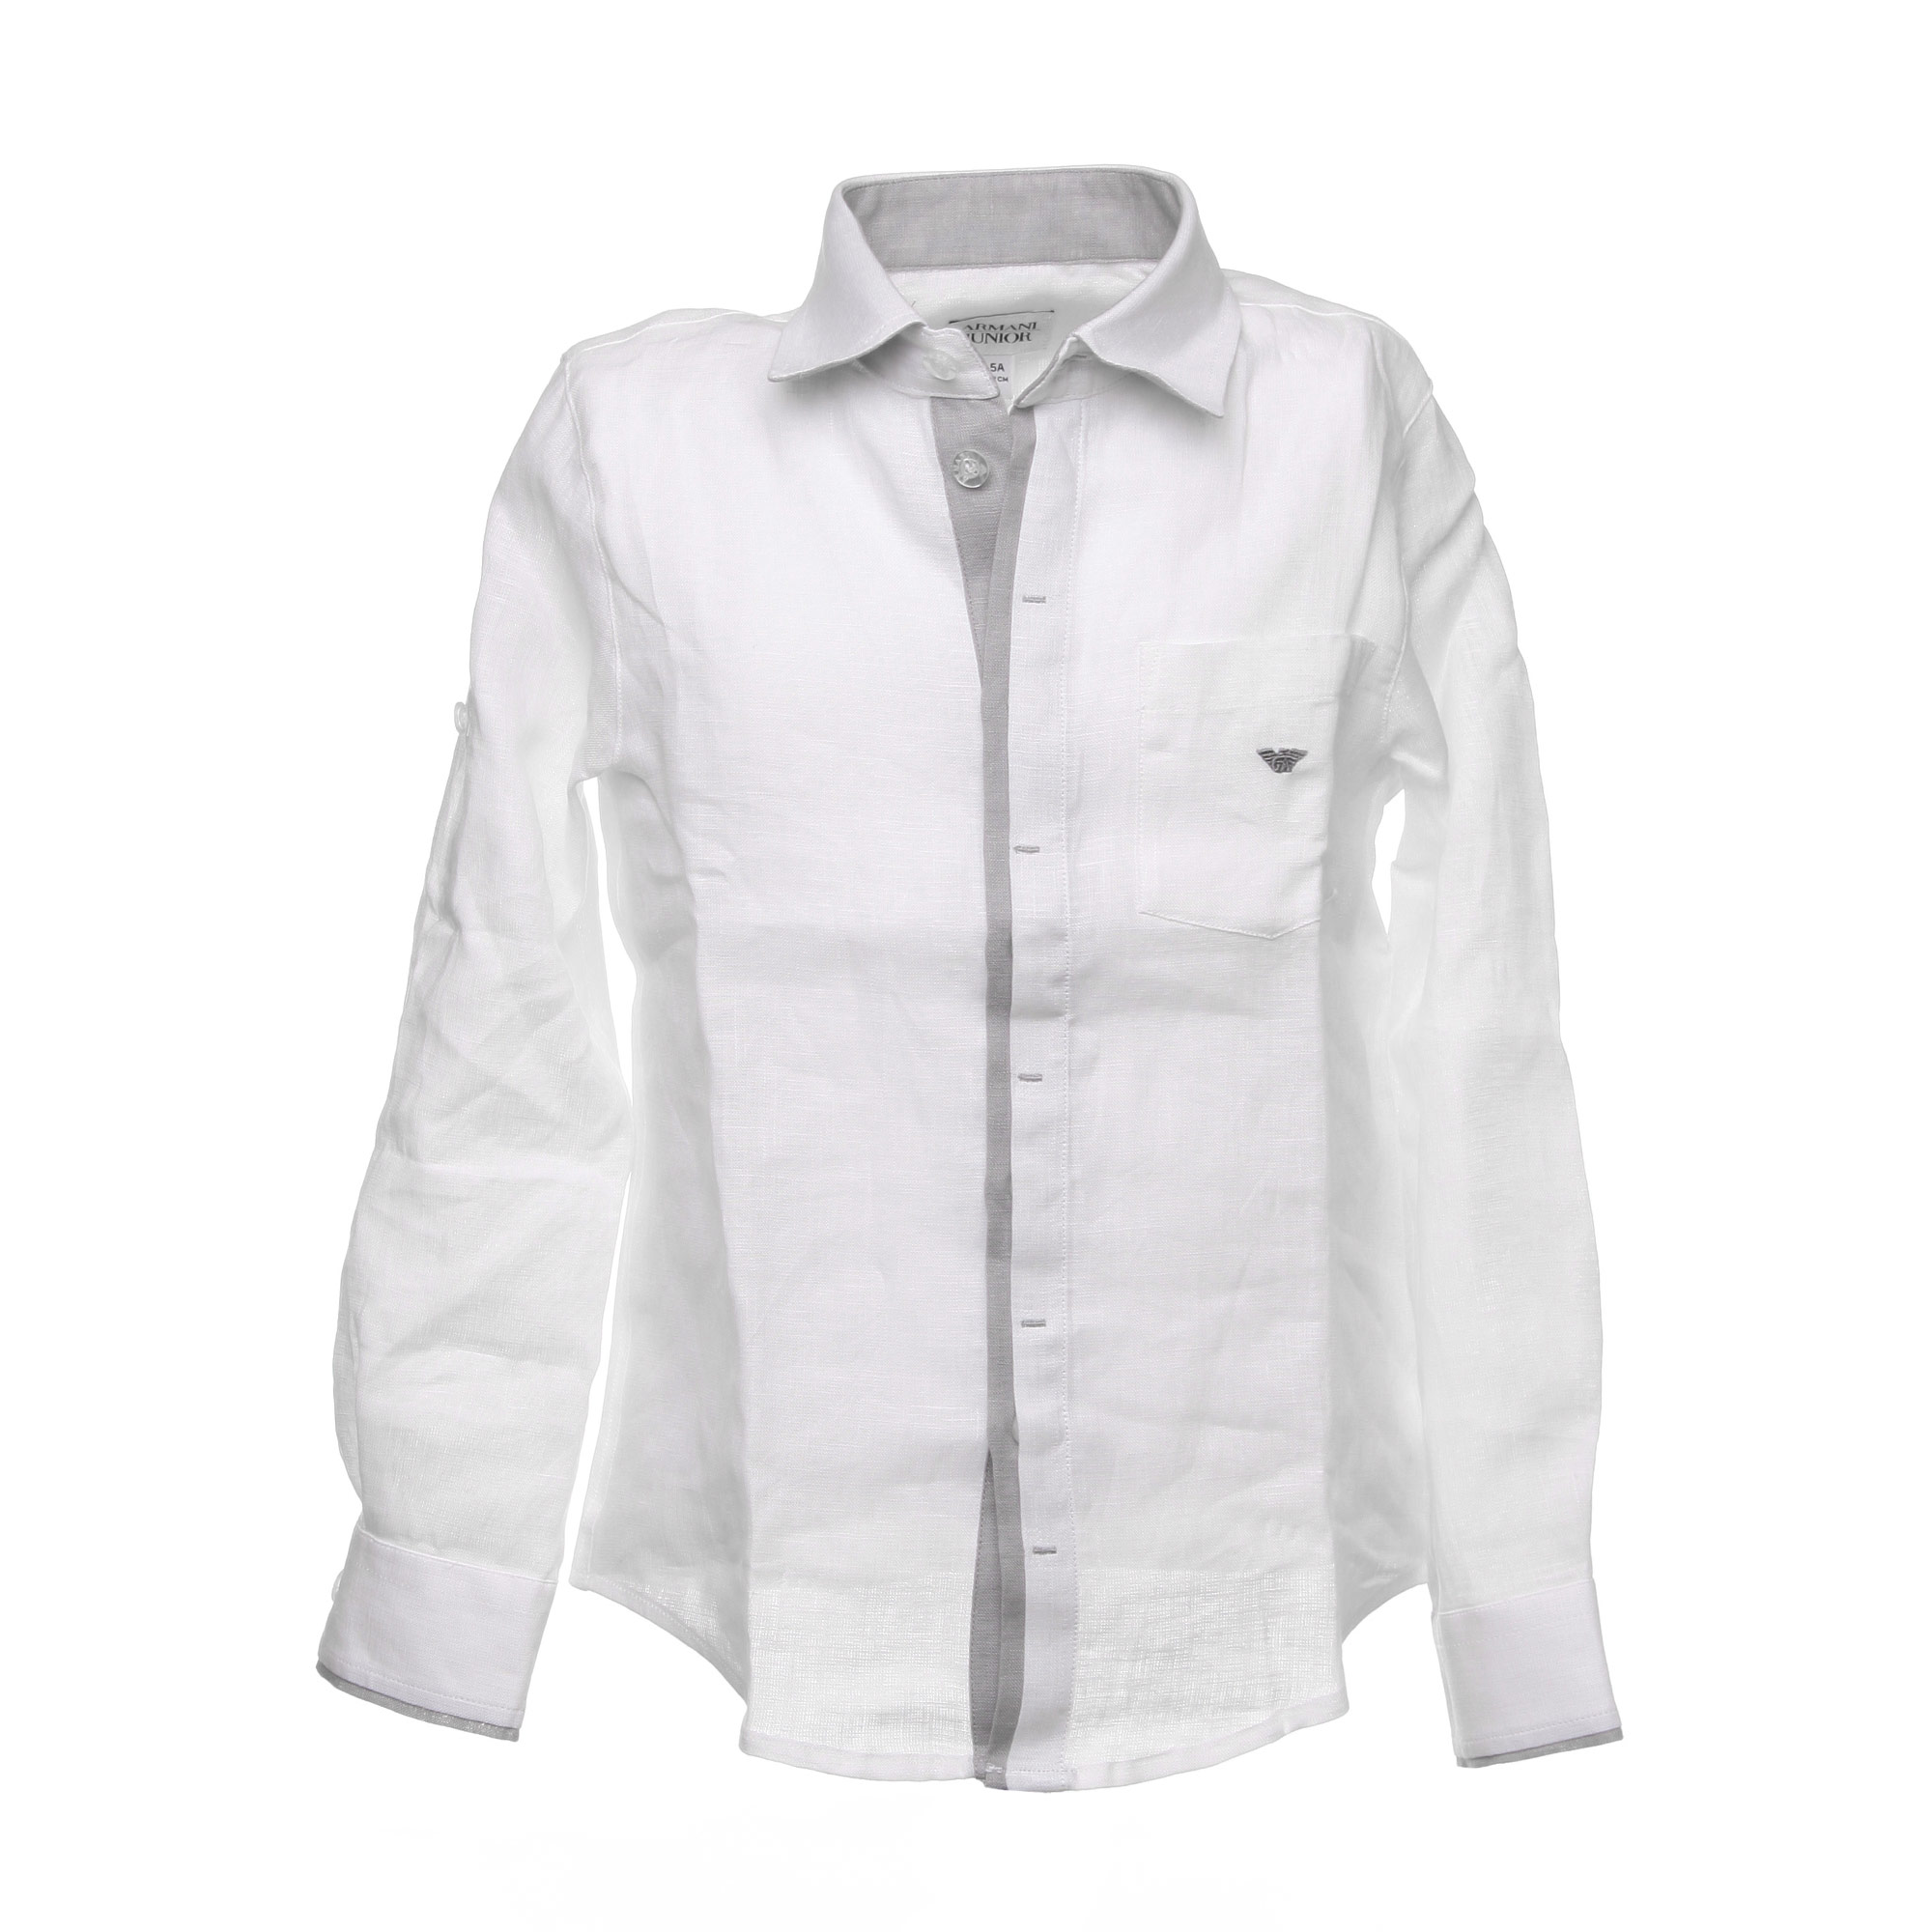 dc51ec34ac9a Armani Junior - White Linen Shirt With Gray Inserts For Boys ...